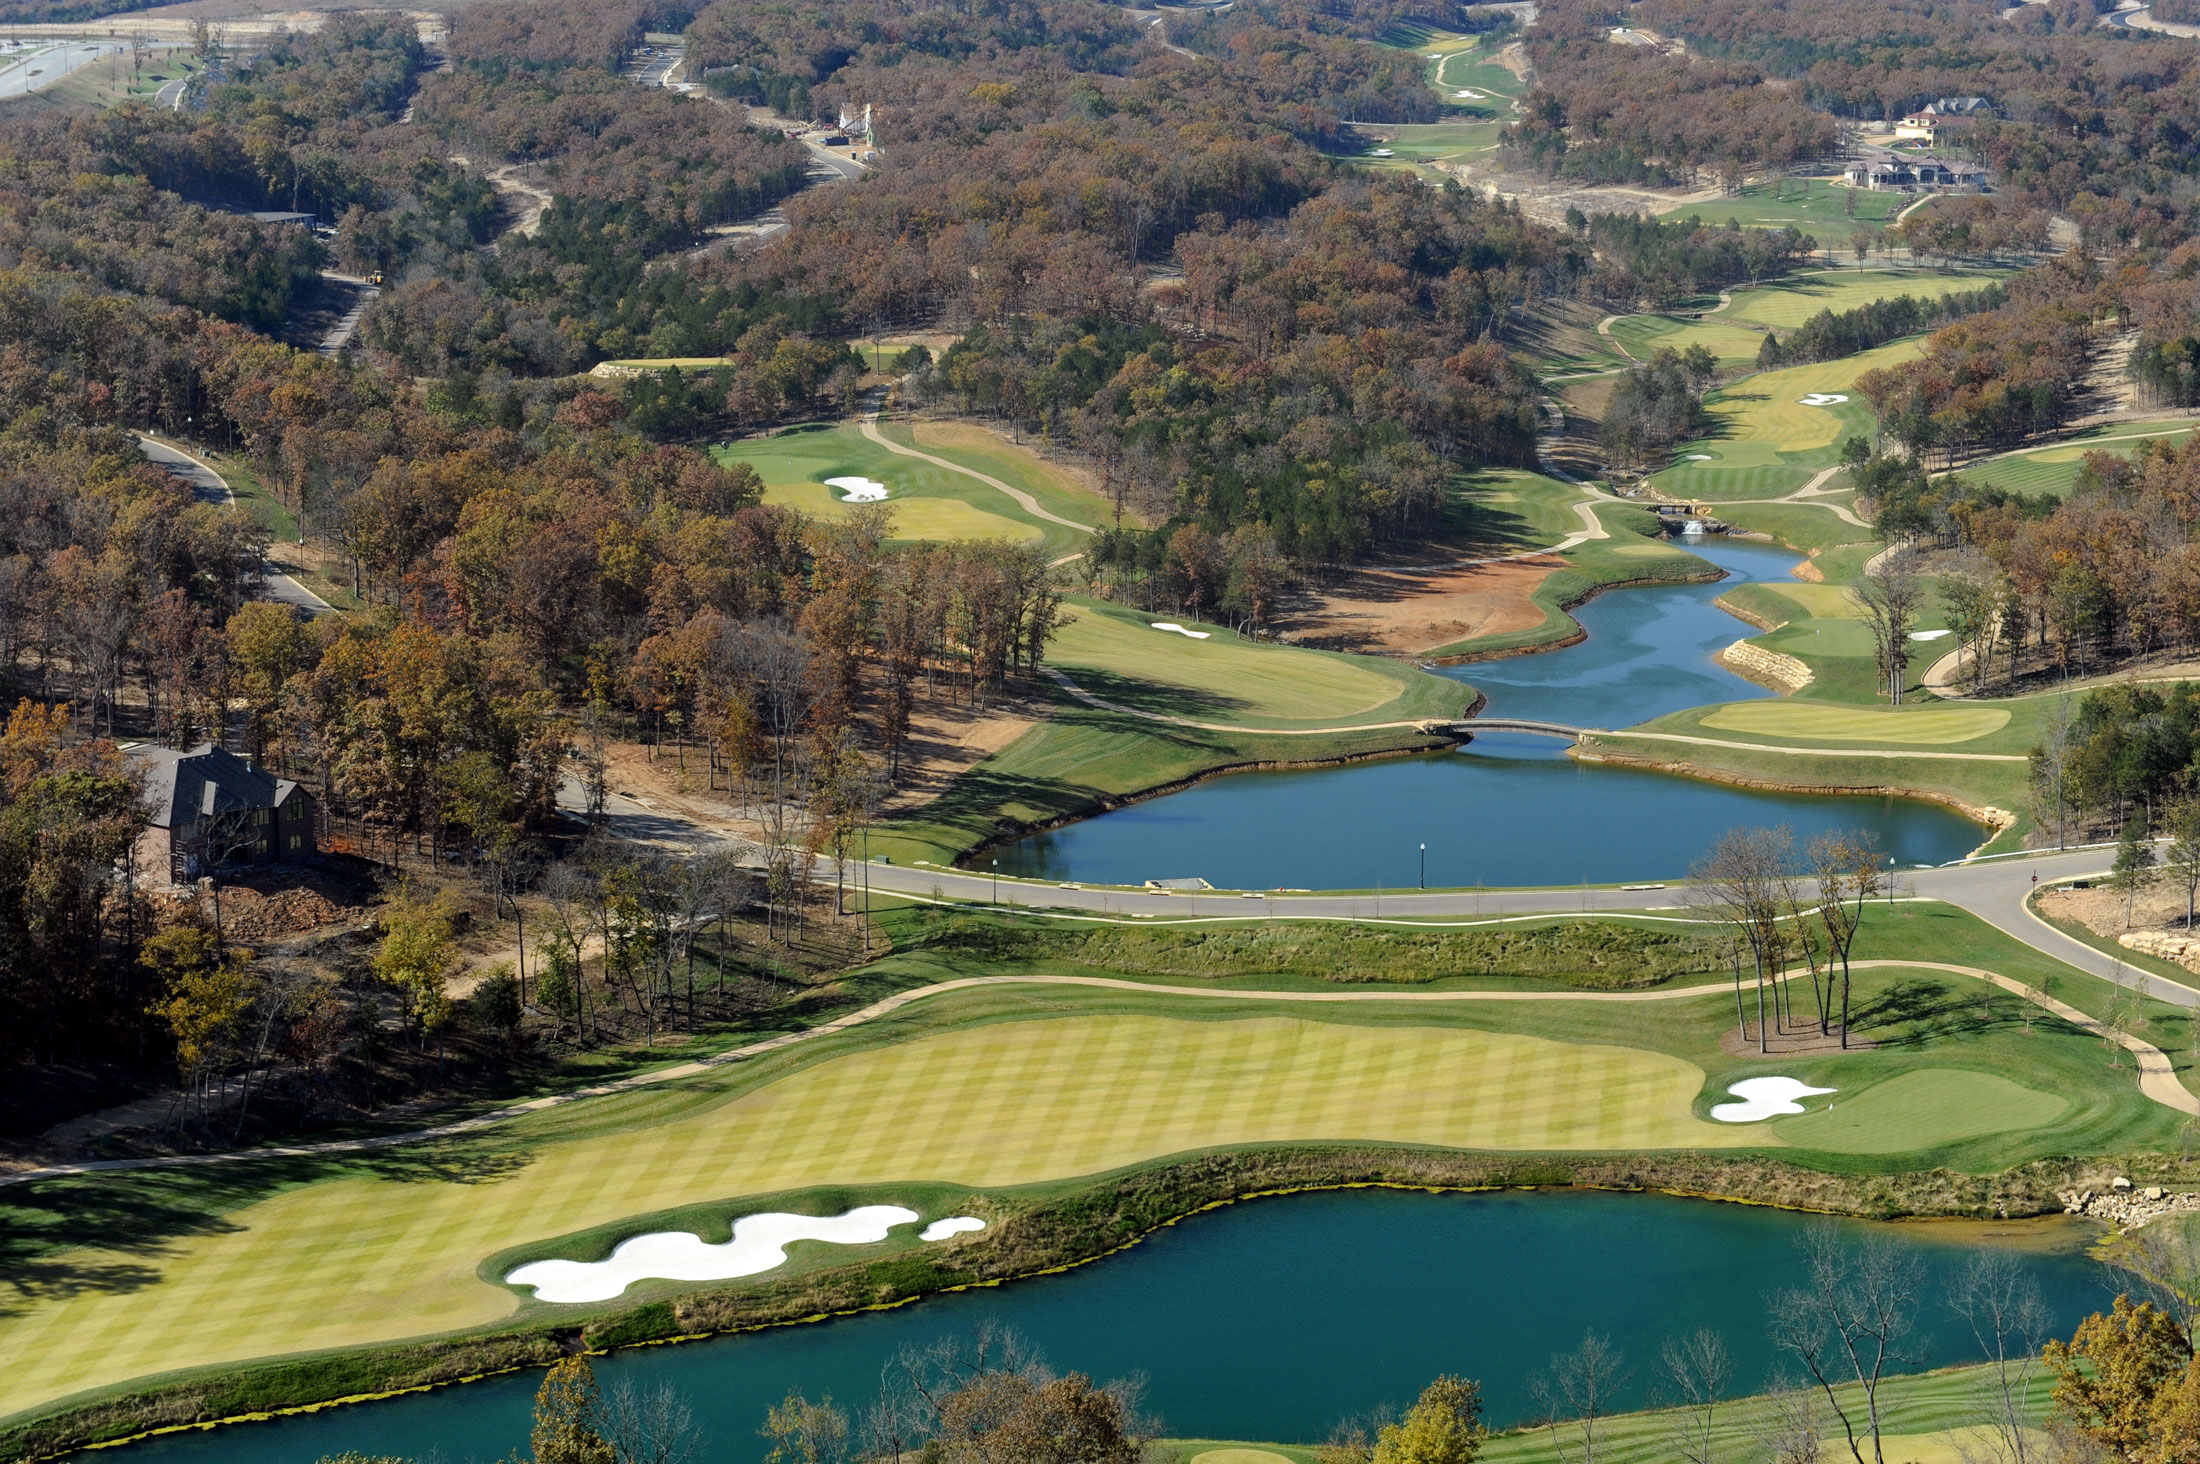 An aerial look at the Payne Stewart Golf Course.